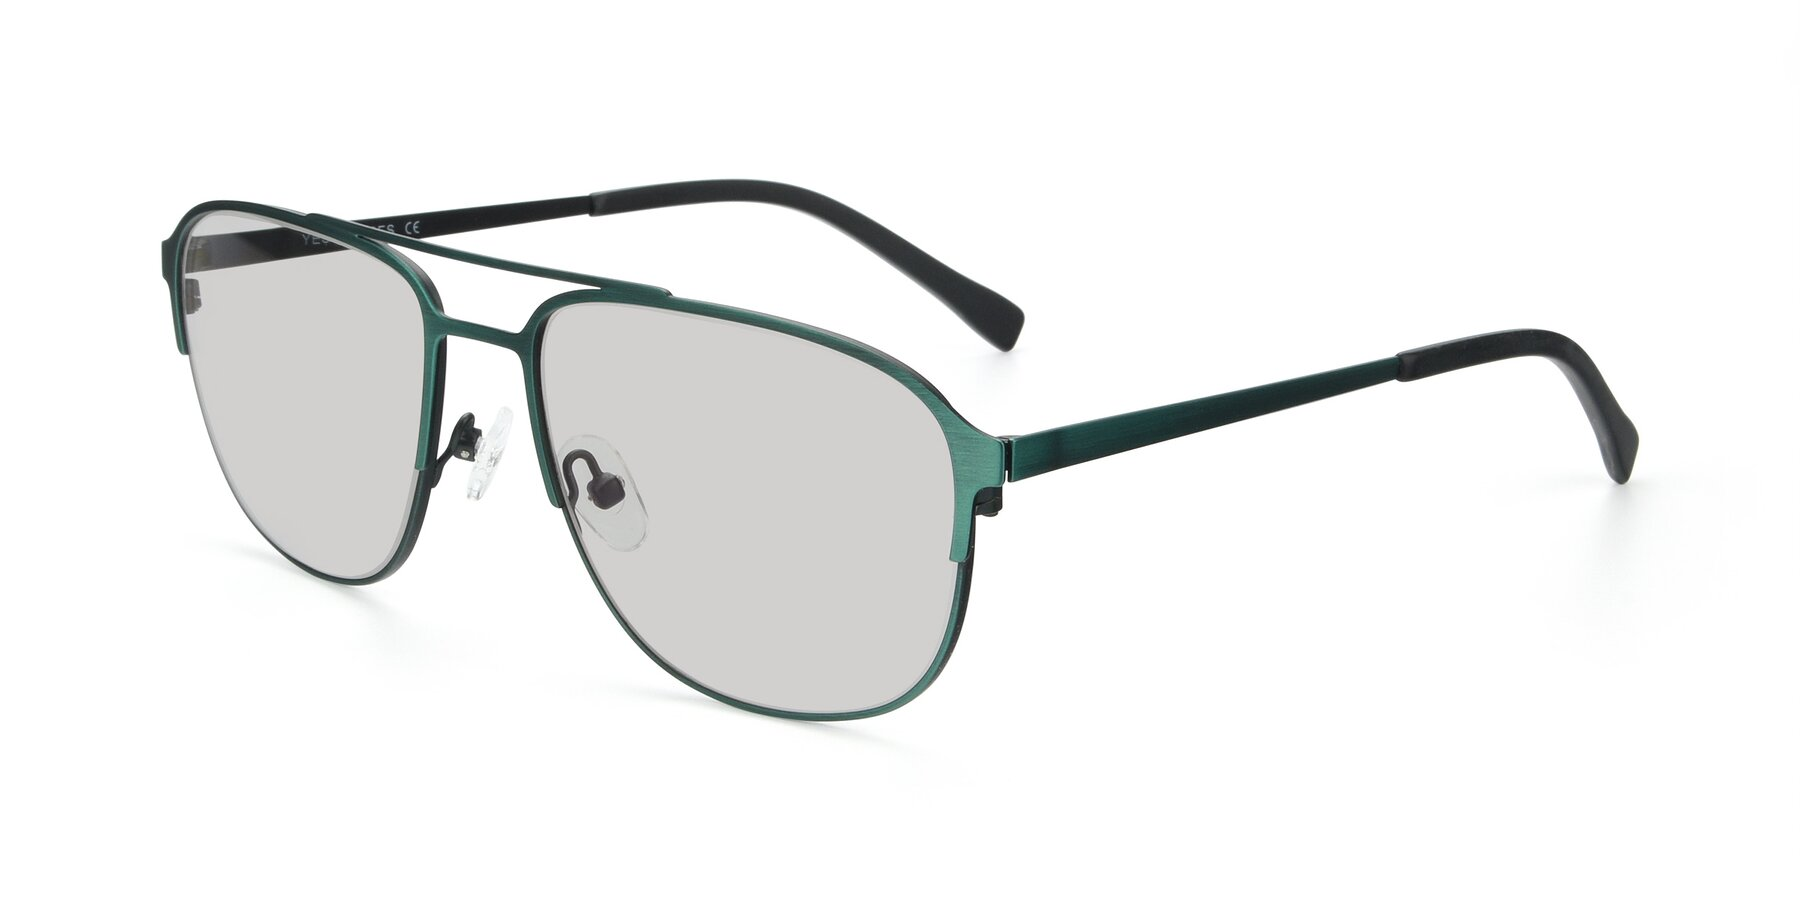 Angle of 9513 in Antique Green with Light Gray Tinted Lenses